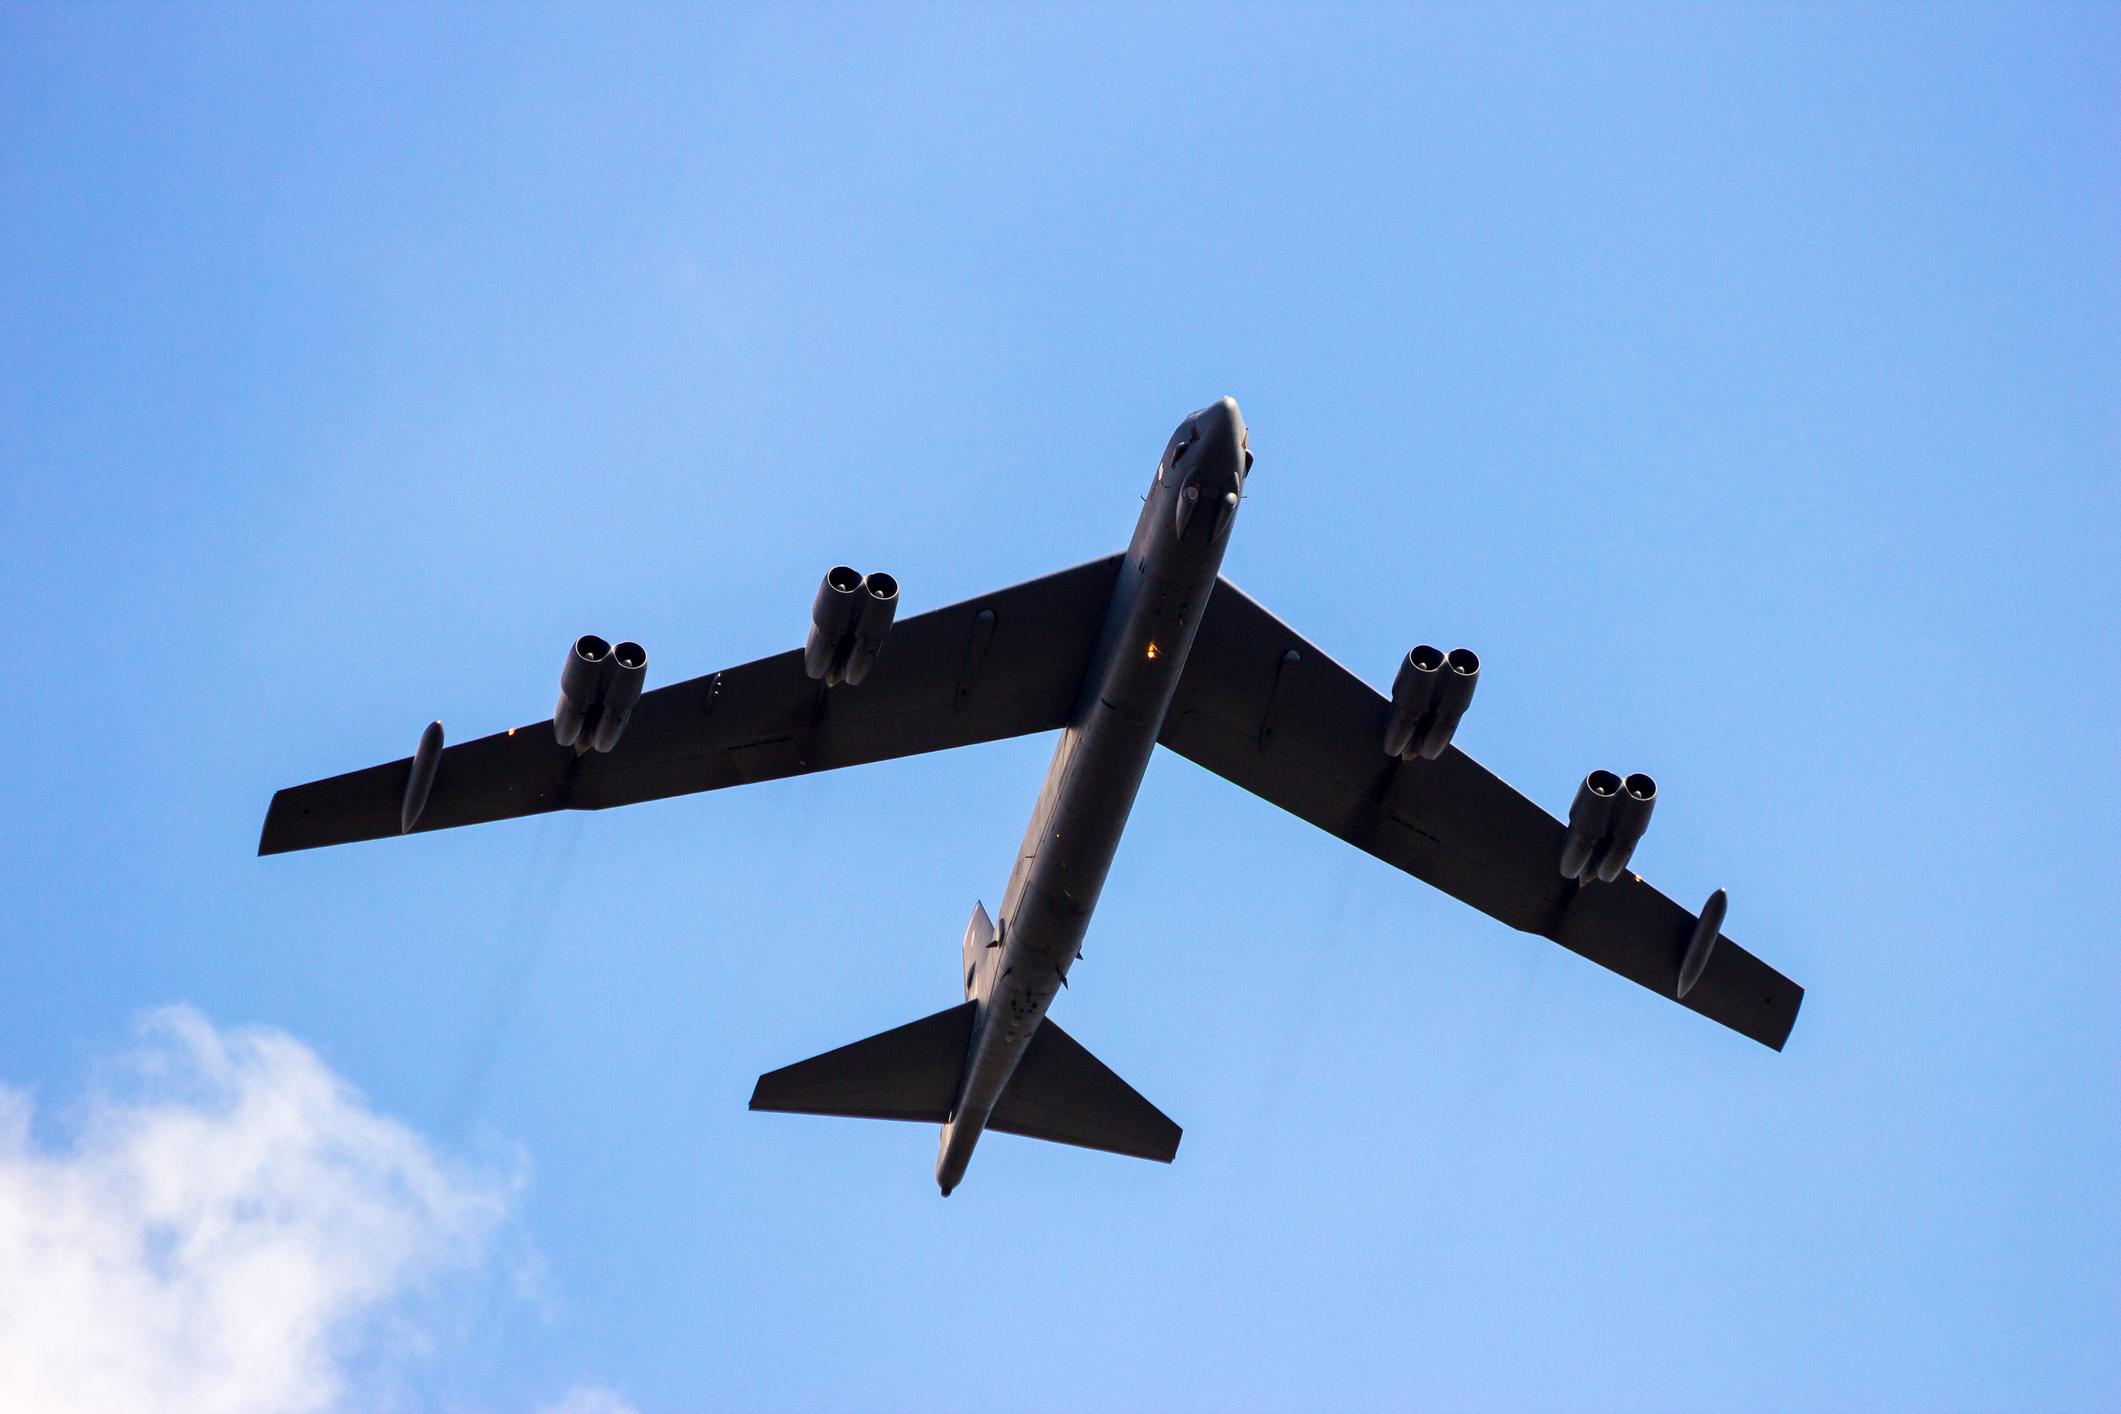 Boeing's Big Win: $14.3 Billion to Modernize the B-52 and B-1 Bombers